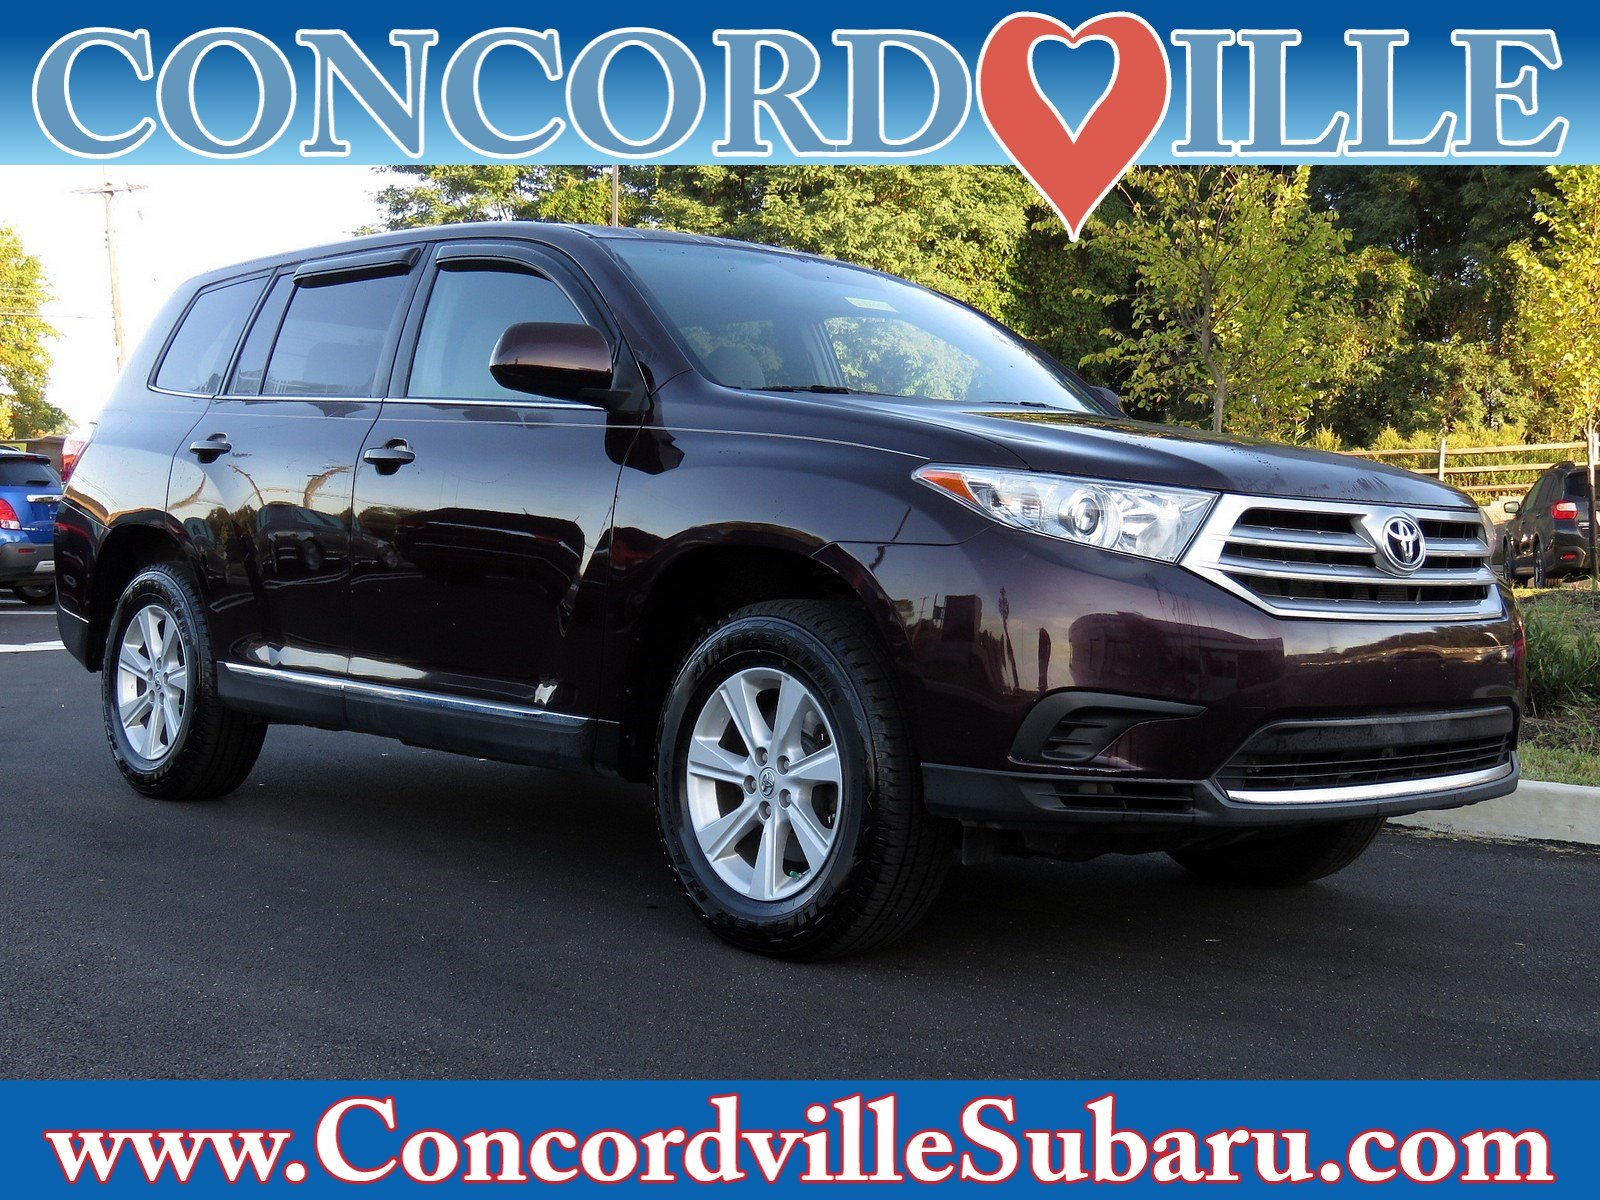 2013 Toyota Highlander For Sale >> Used 2013 Toyota Highlander Suv For Sale In Glen Mills Pa Near Concordville West Chester Chester Pa Wilmington De Vin 5tdbk3eh3ds264870